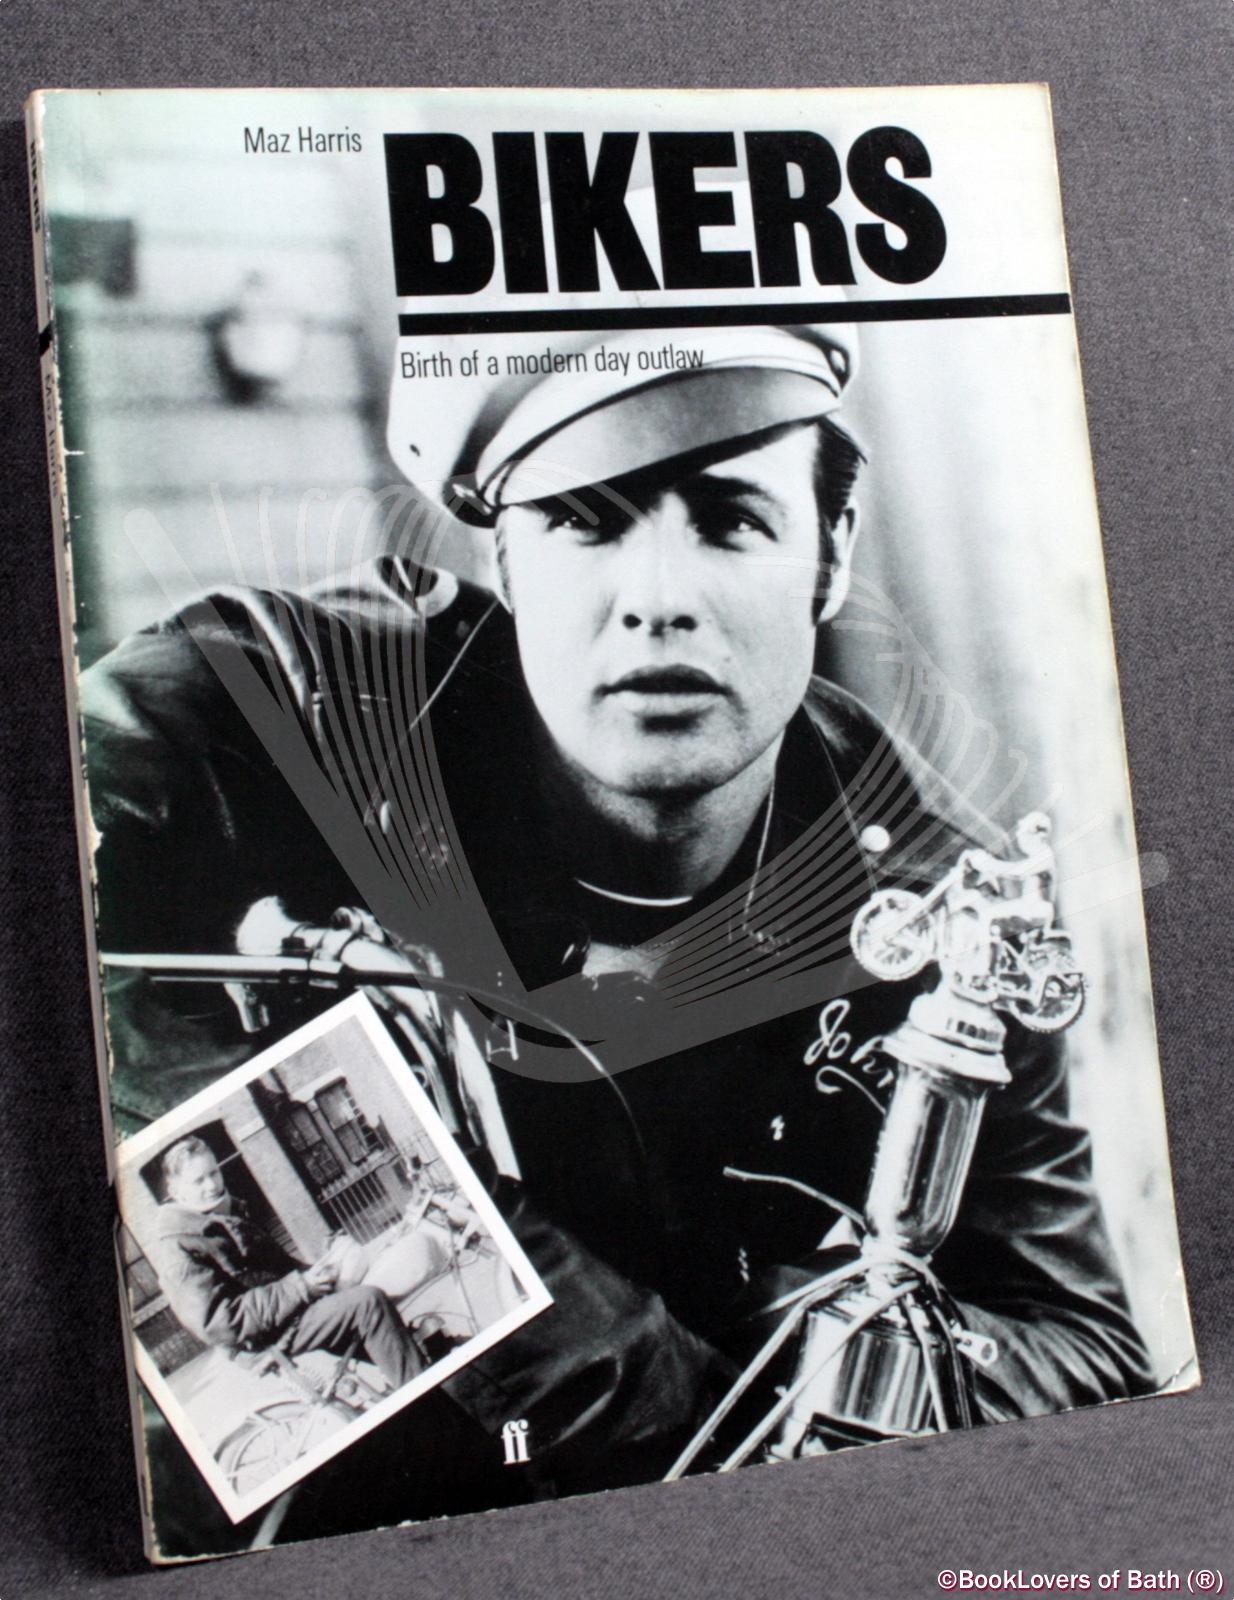 Bikers: Birth of a Modern Day Outlaw - Maz Harris